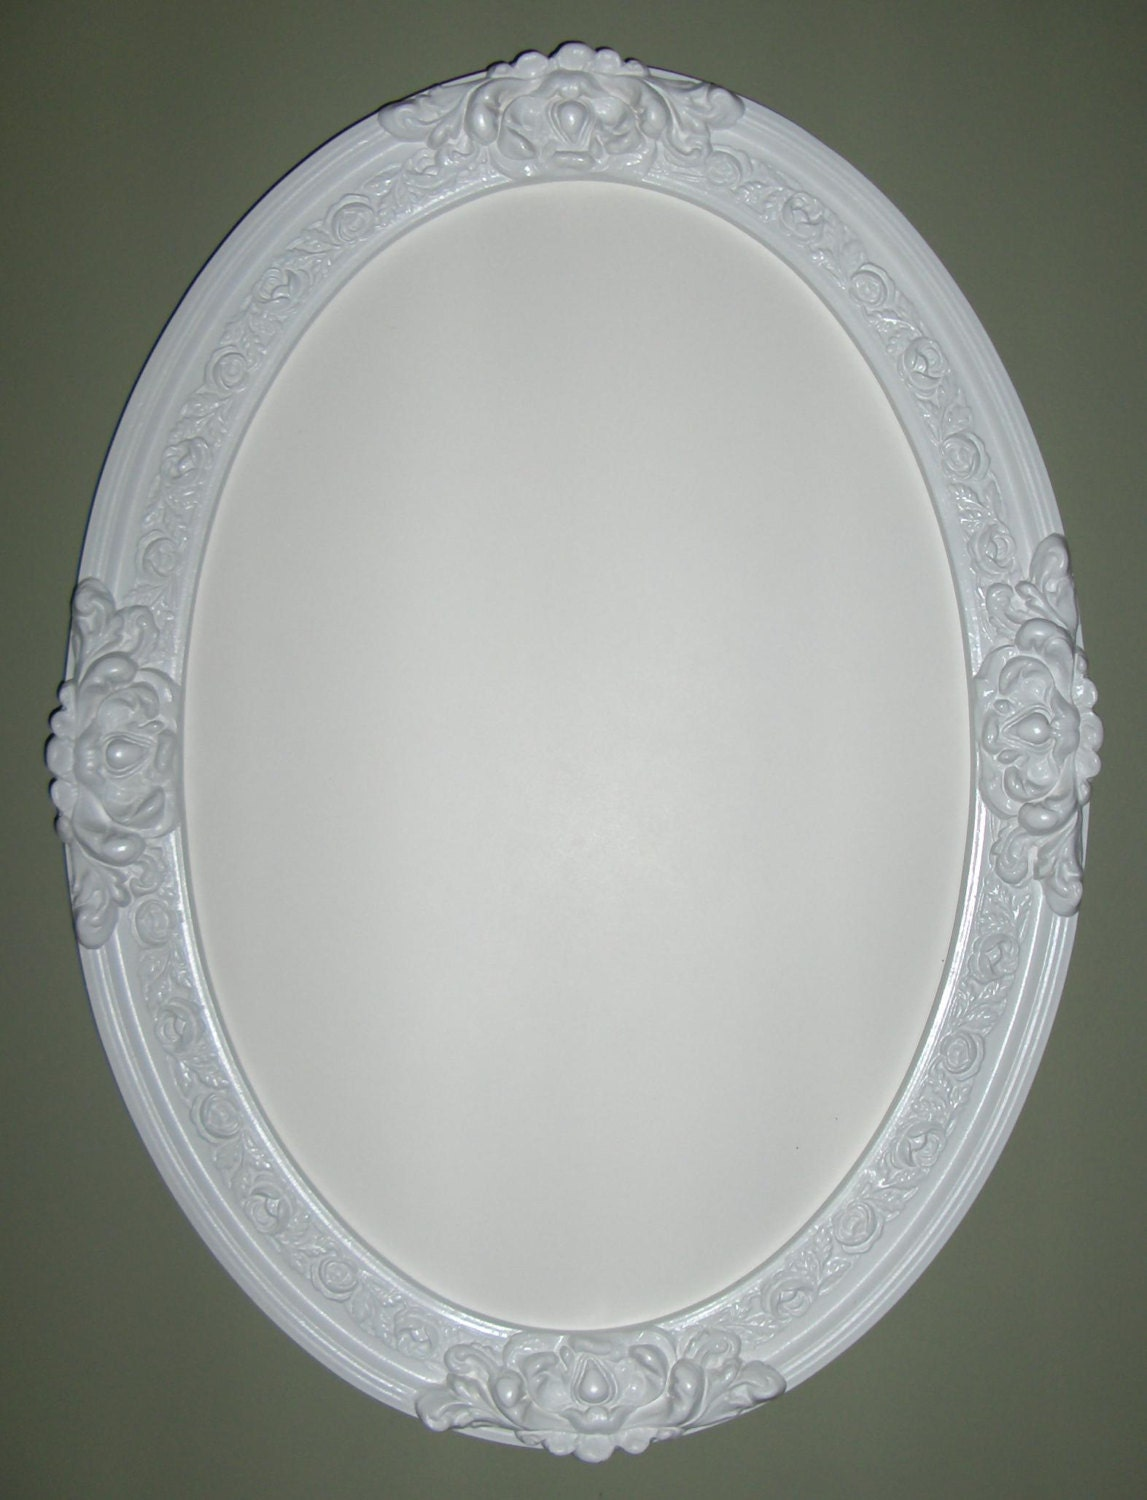 framed oval bathroom mirror white frame oval mirror bathroom mirror vanity by wallaccents 18395 | il fullxfull.695852048 qwfr